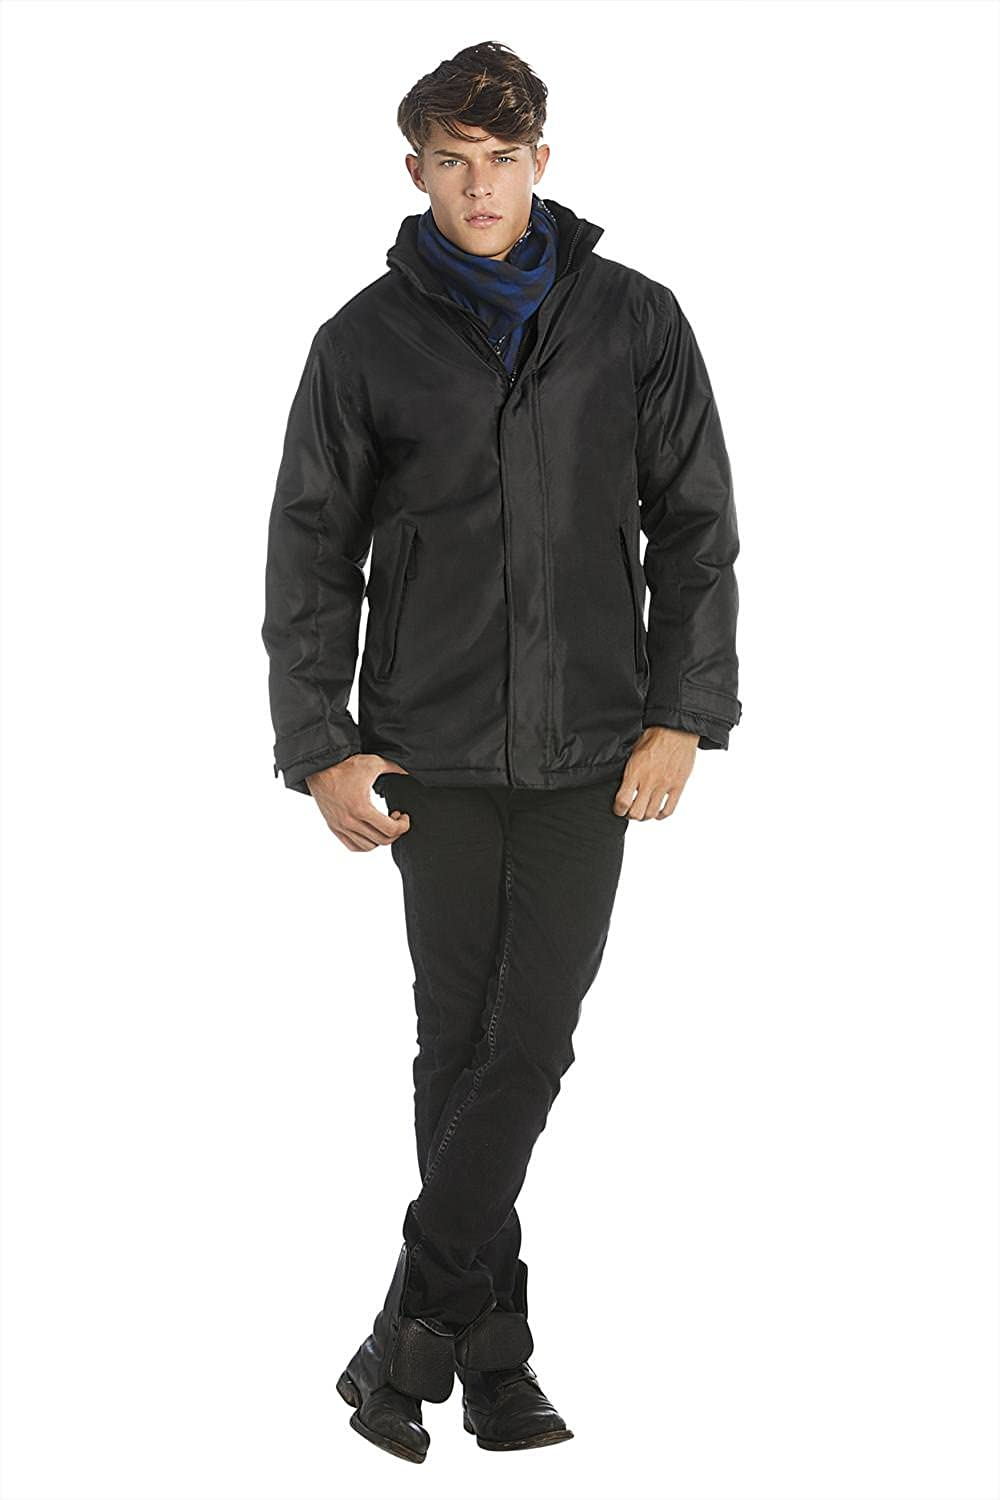 Men's Waterproof Parka Jacket by B and C Collection